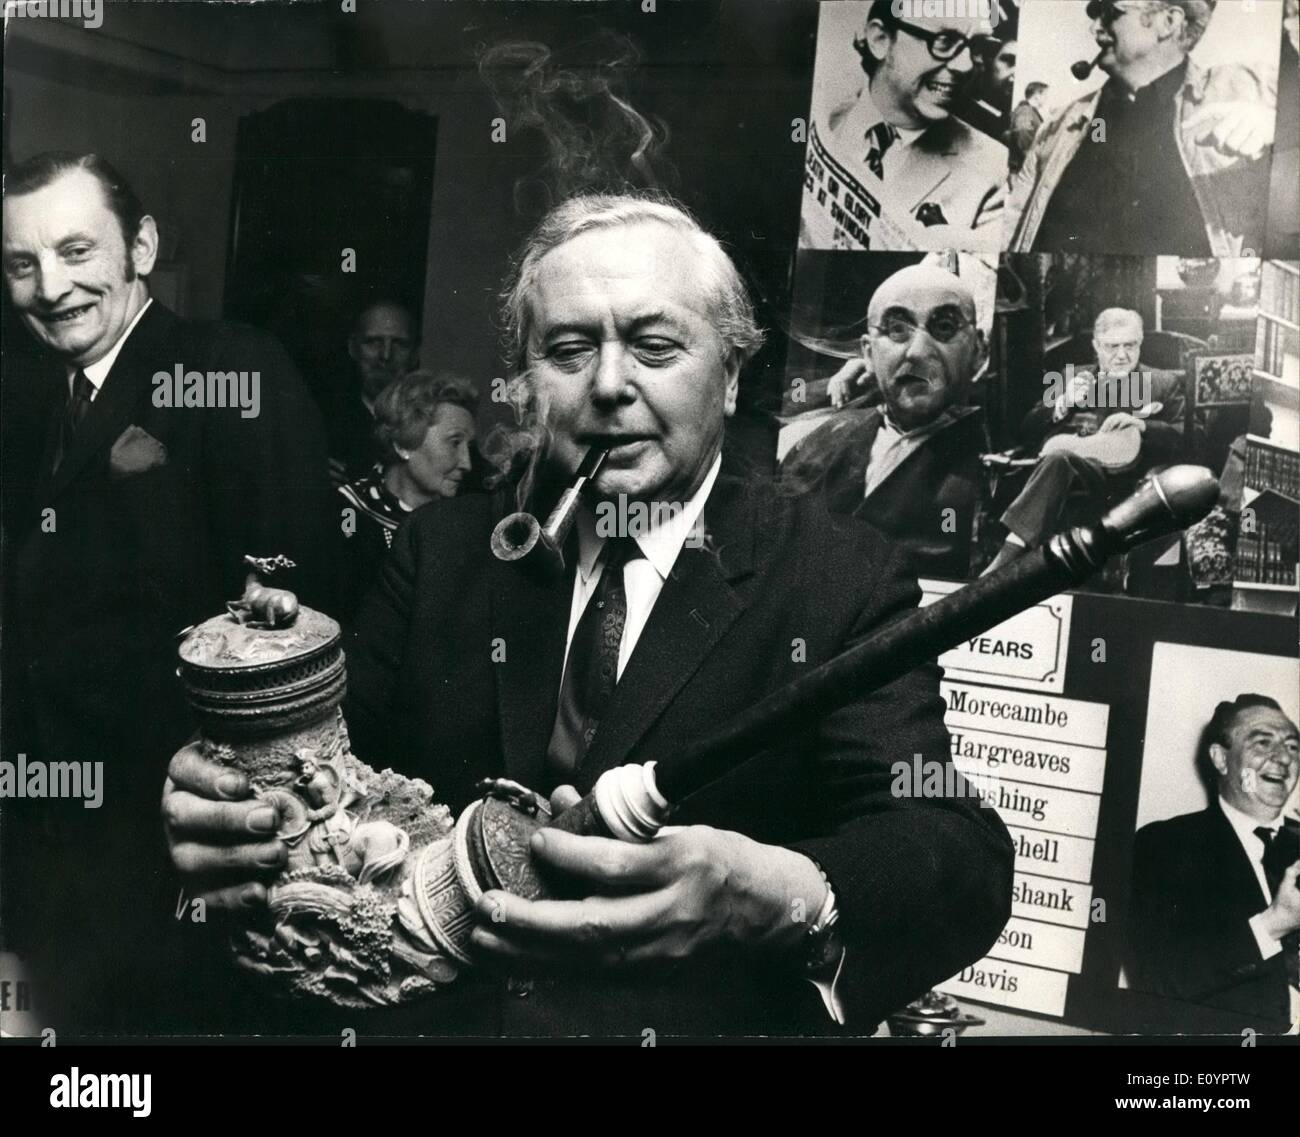 Mar. 03, 1971 - Mr. Wilson at ''pipe Smoking through the ages'' exhibition. Mr. Harold Wilson today opened the ''pipe smoking Through the ages'' Exhibition - in park lane. Photo shows Mr. Wilson puffing contentedly at a pipe which was presented to him at today's opening -as he inspects one of the exhibits - a Meerschaum pipe made for the great Exhibition of 1851. - Stock Image